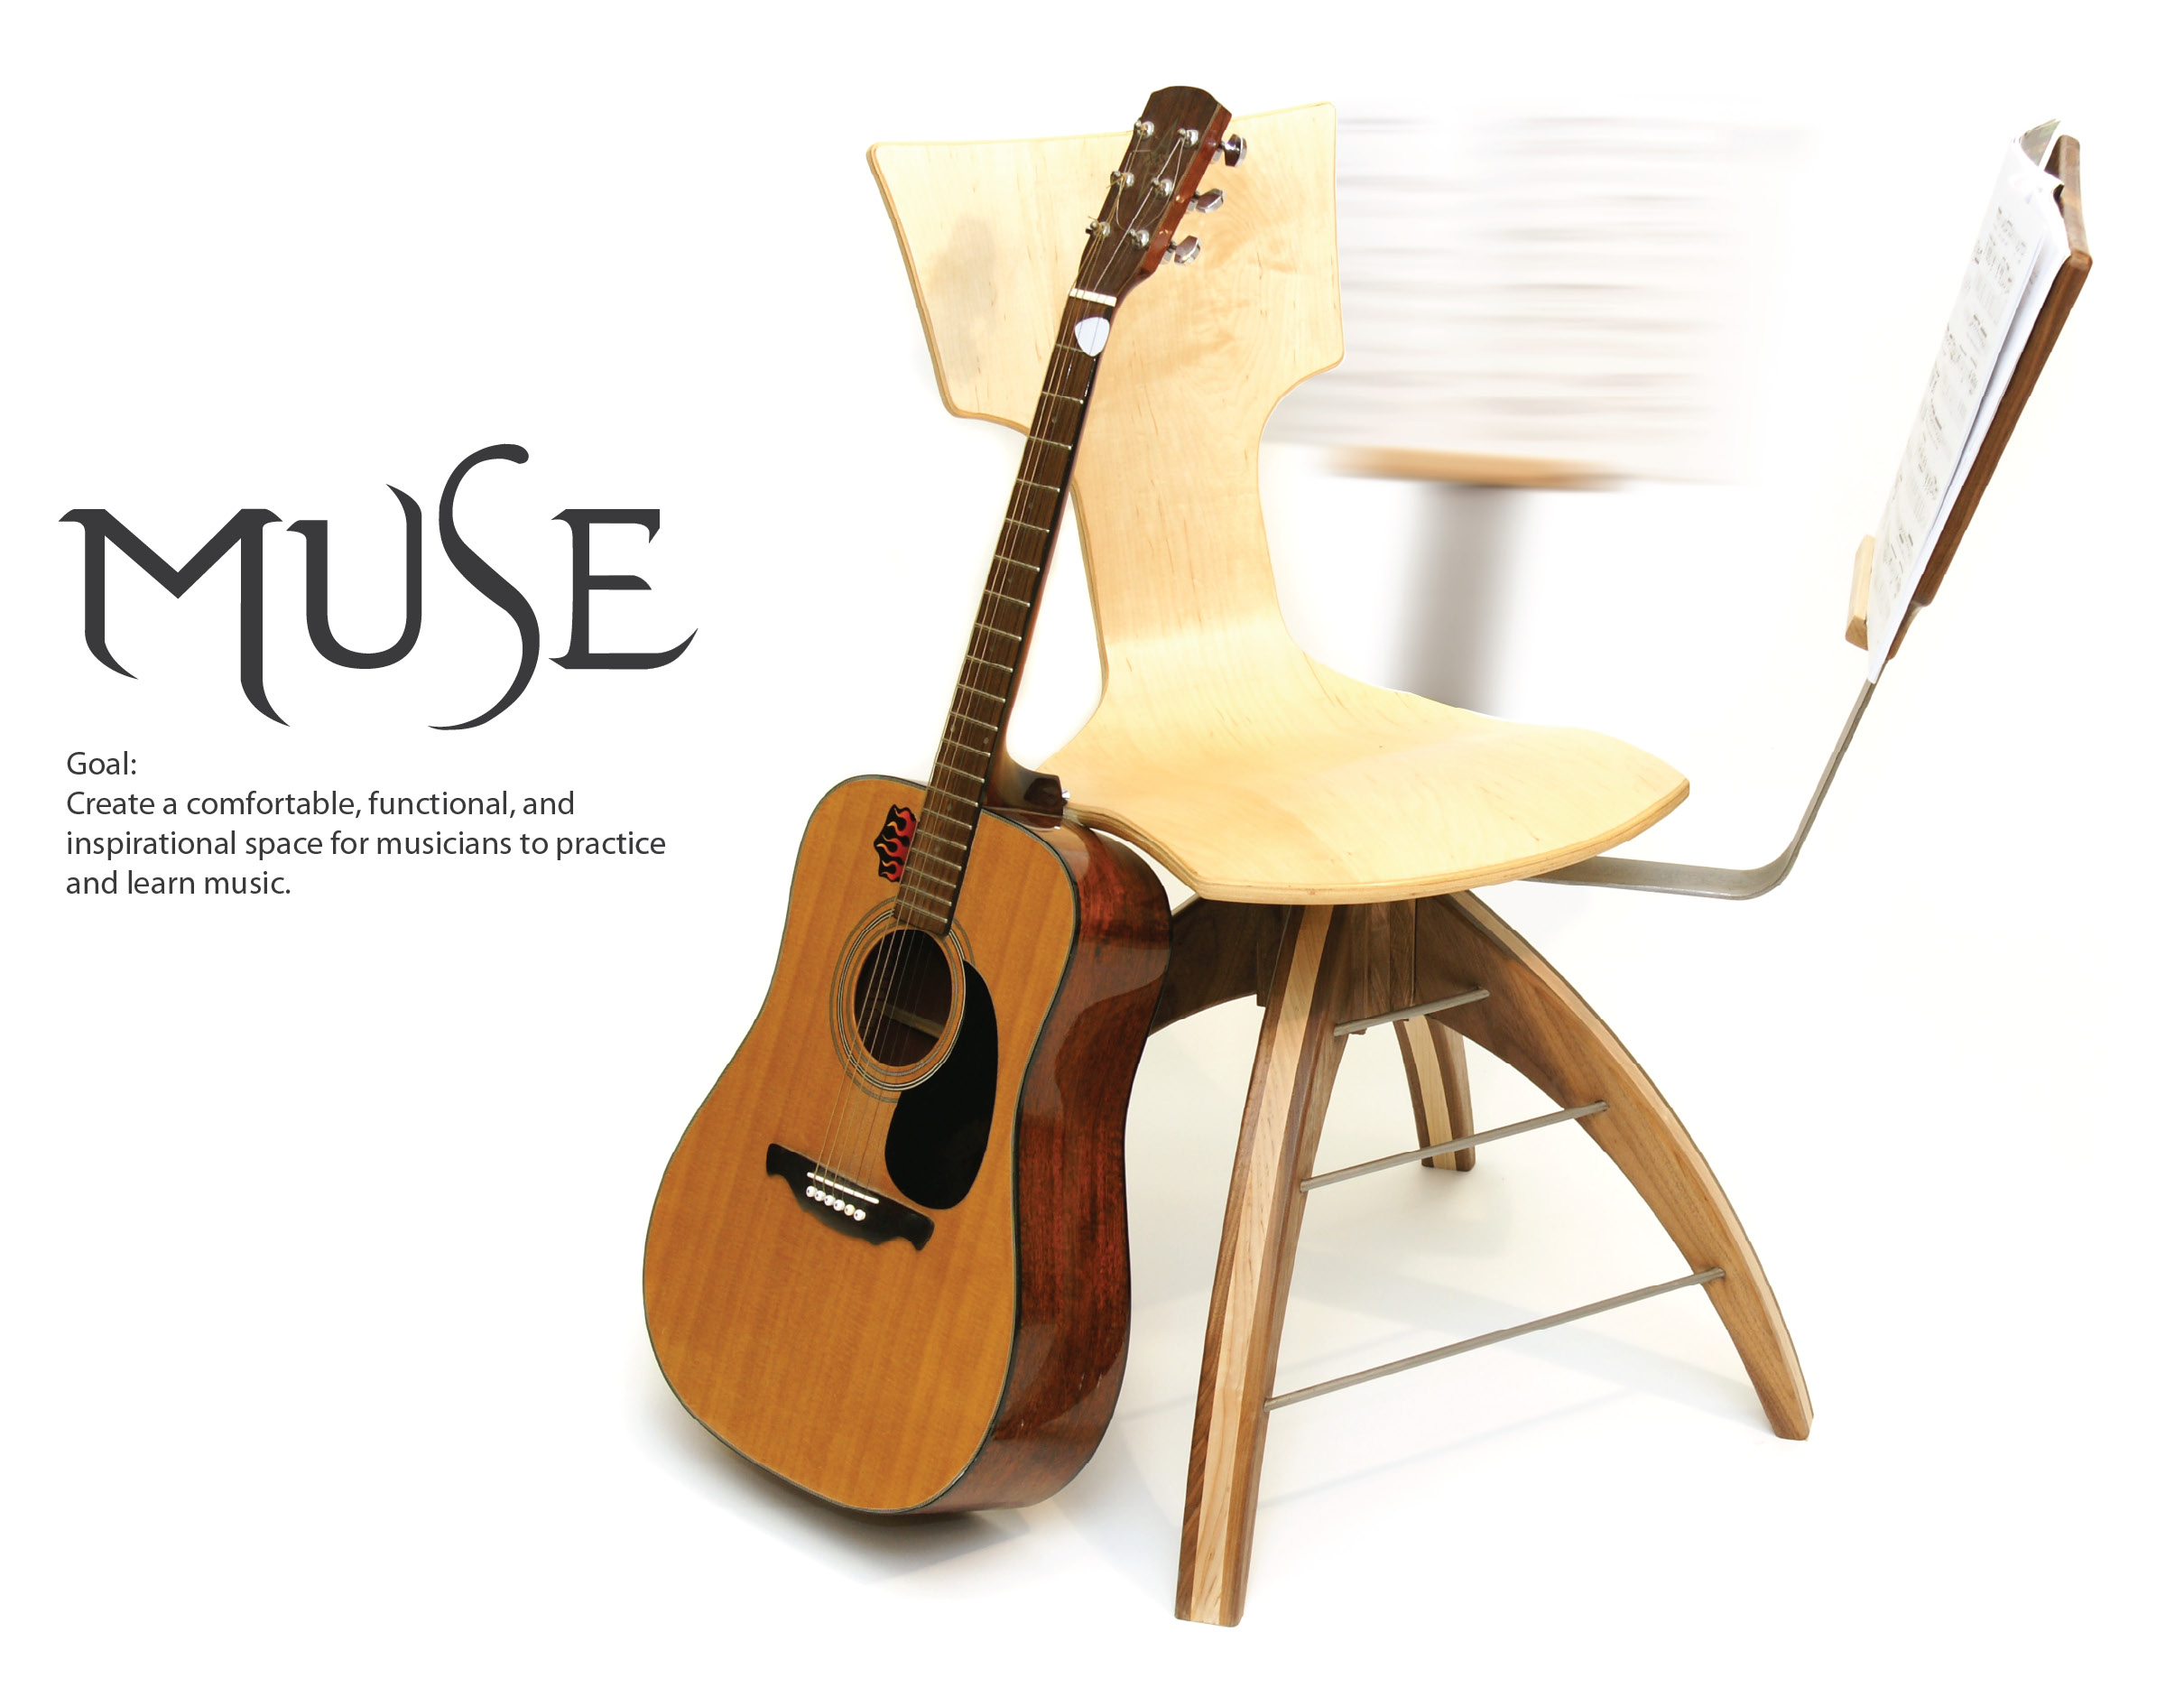 guitar playing chair amish 3 in 1 highchair muse inspire your creativity by corey harris at coroflot